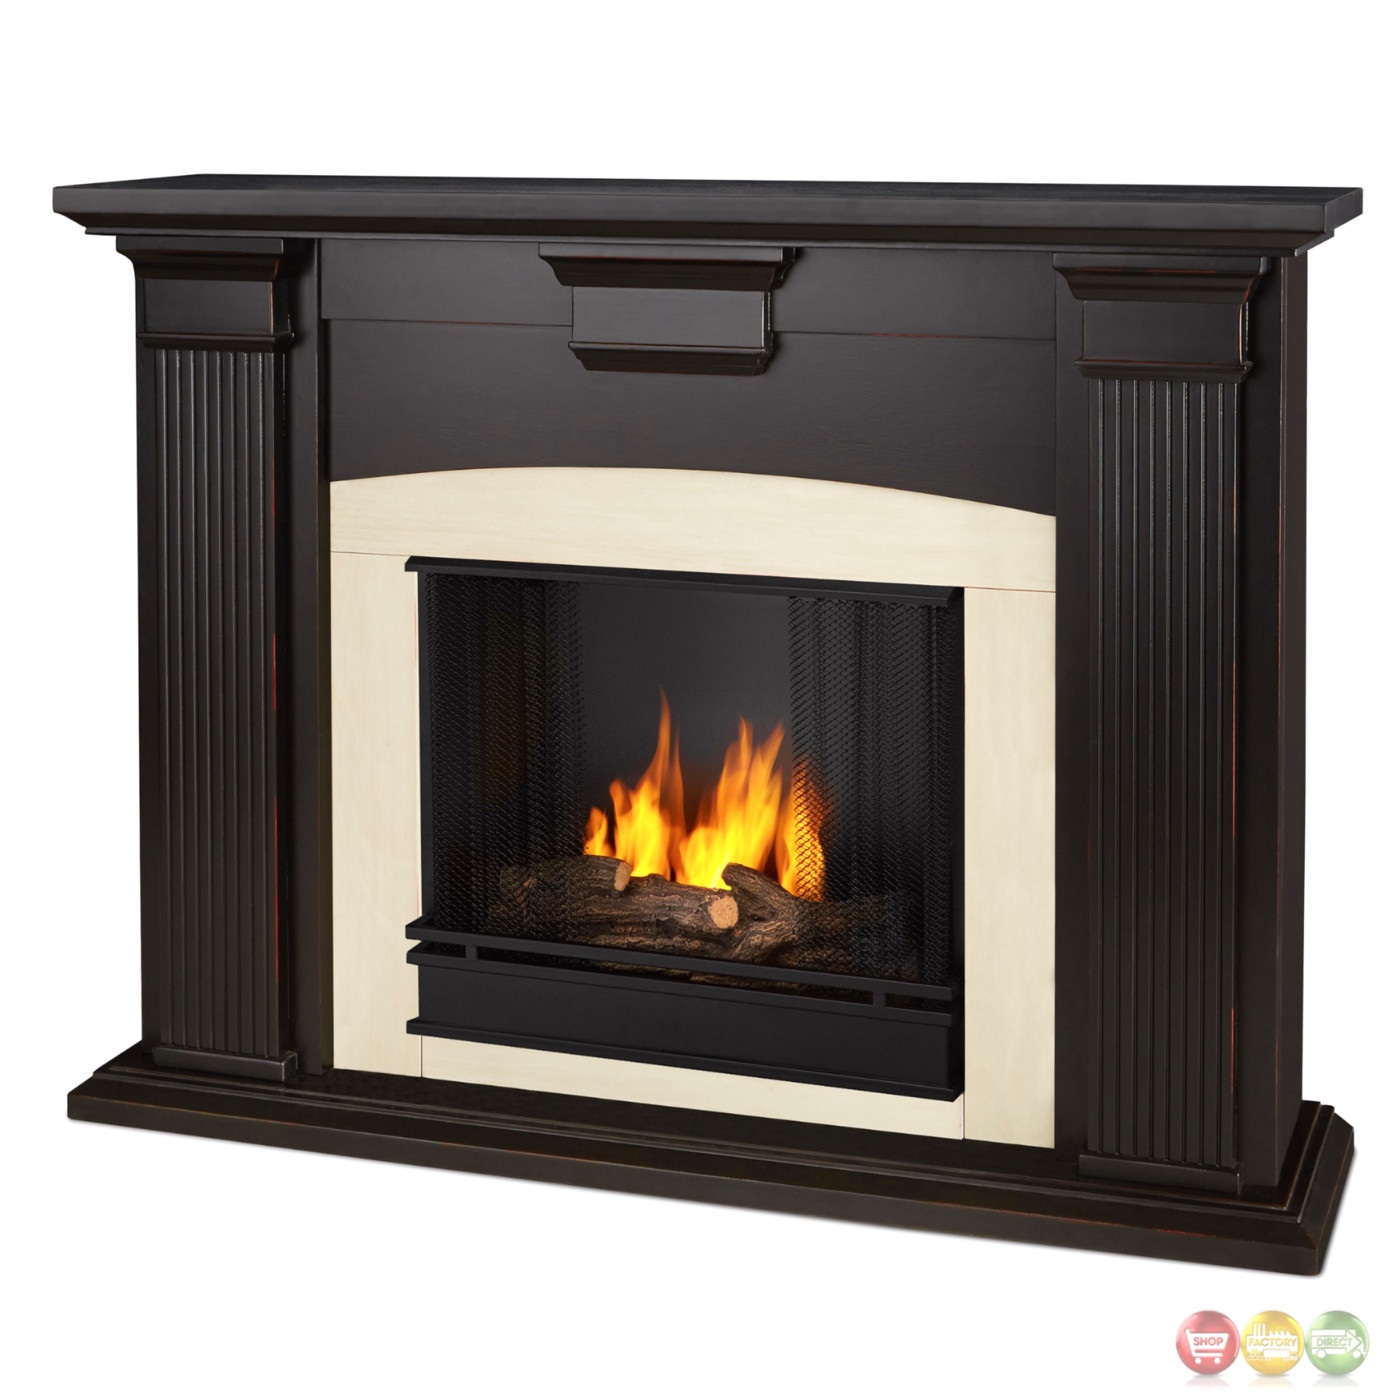 Adelaide Ventless Gel Fireplace In Antique Blackwash With Logs 51x39